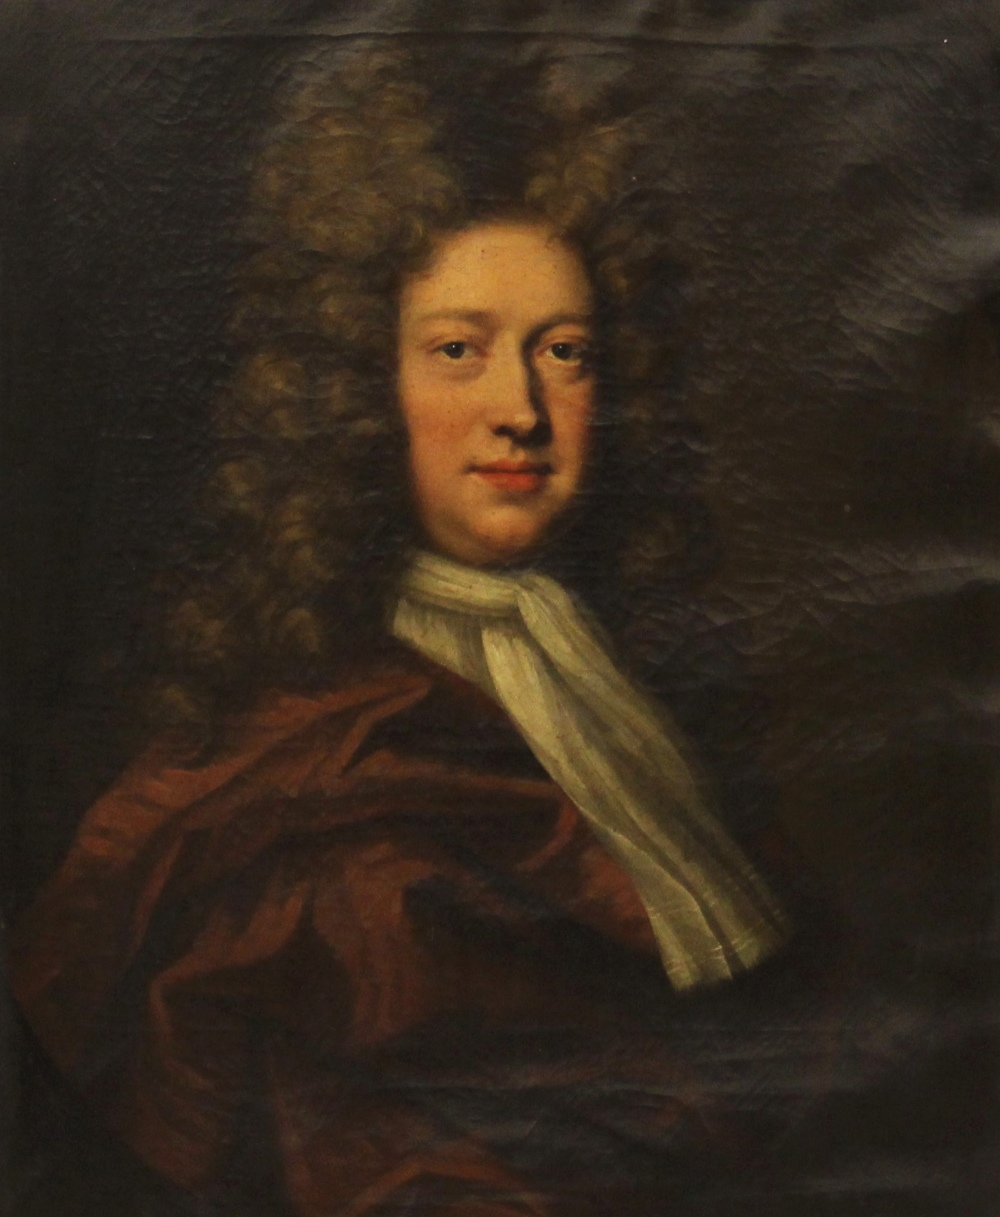 Circle of Michael Dahl (1659-1743), Portrait of George Kenyon half length wearing a red cloak and